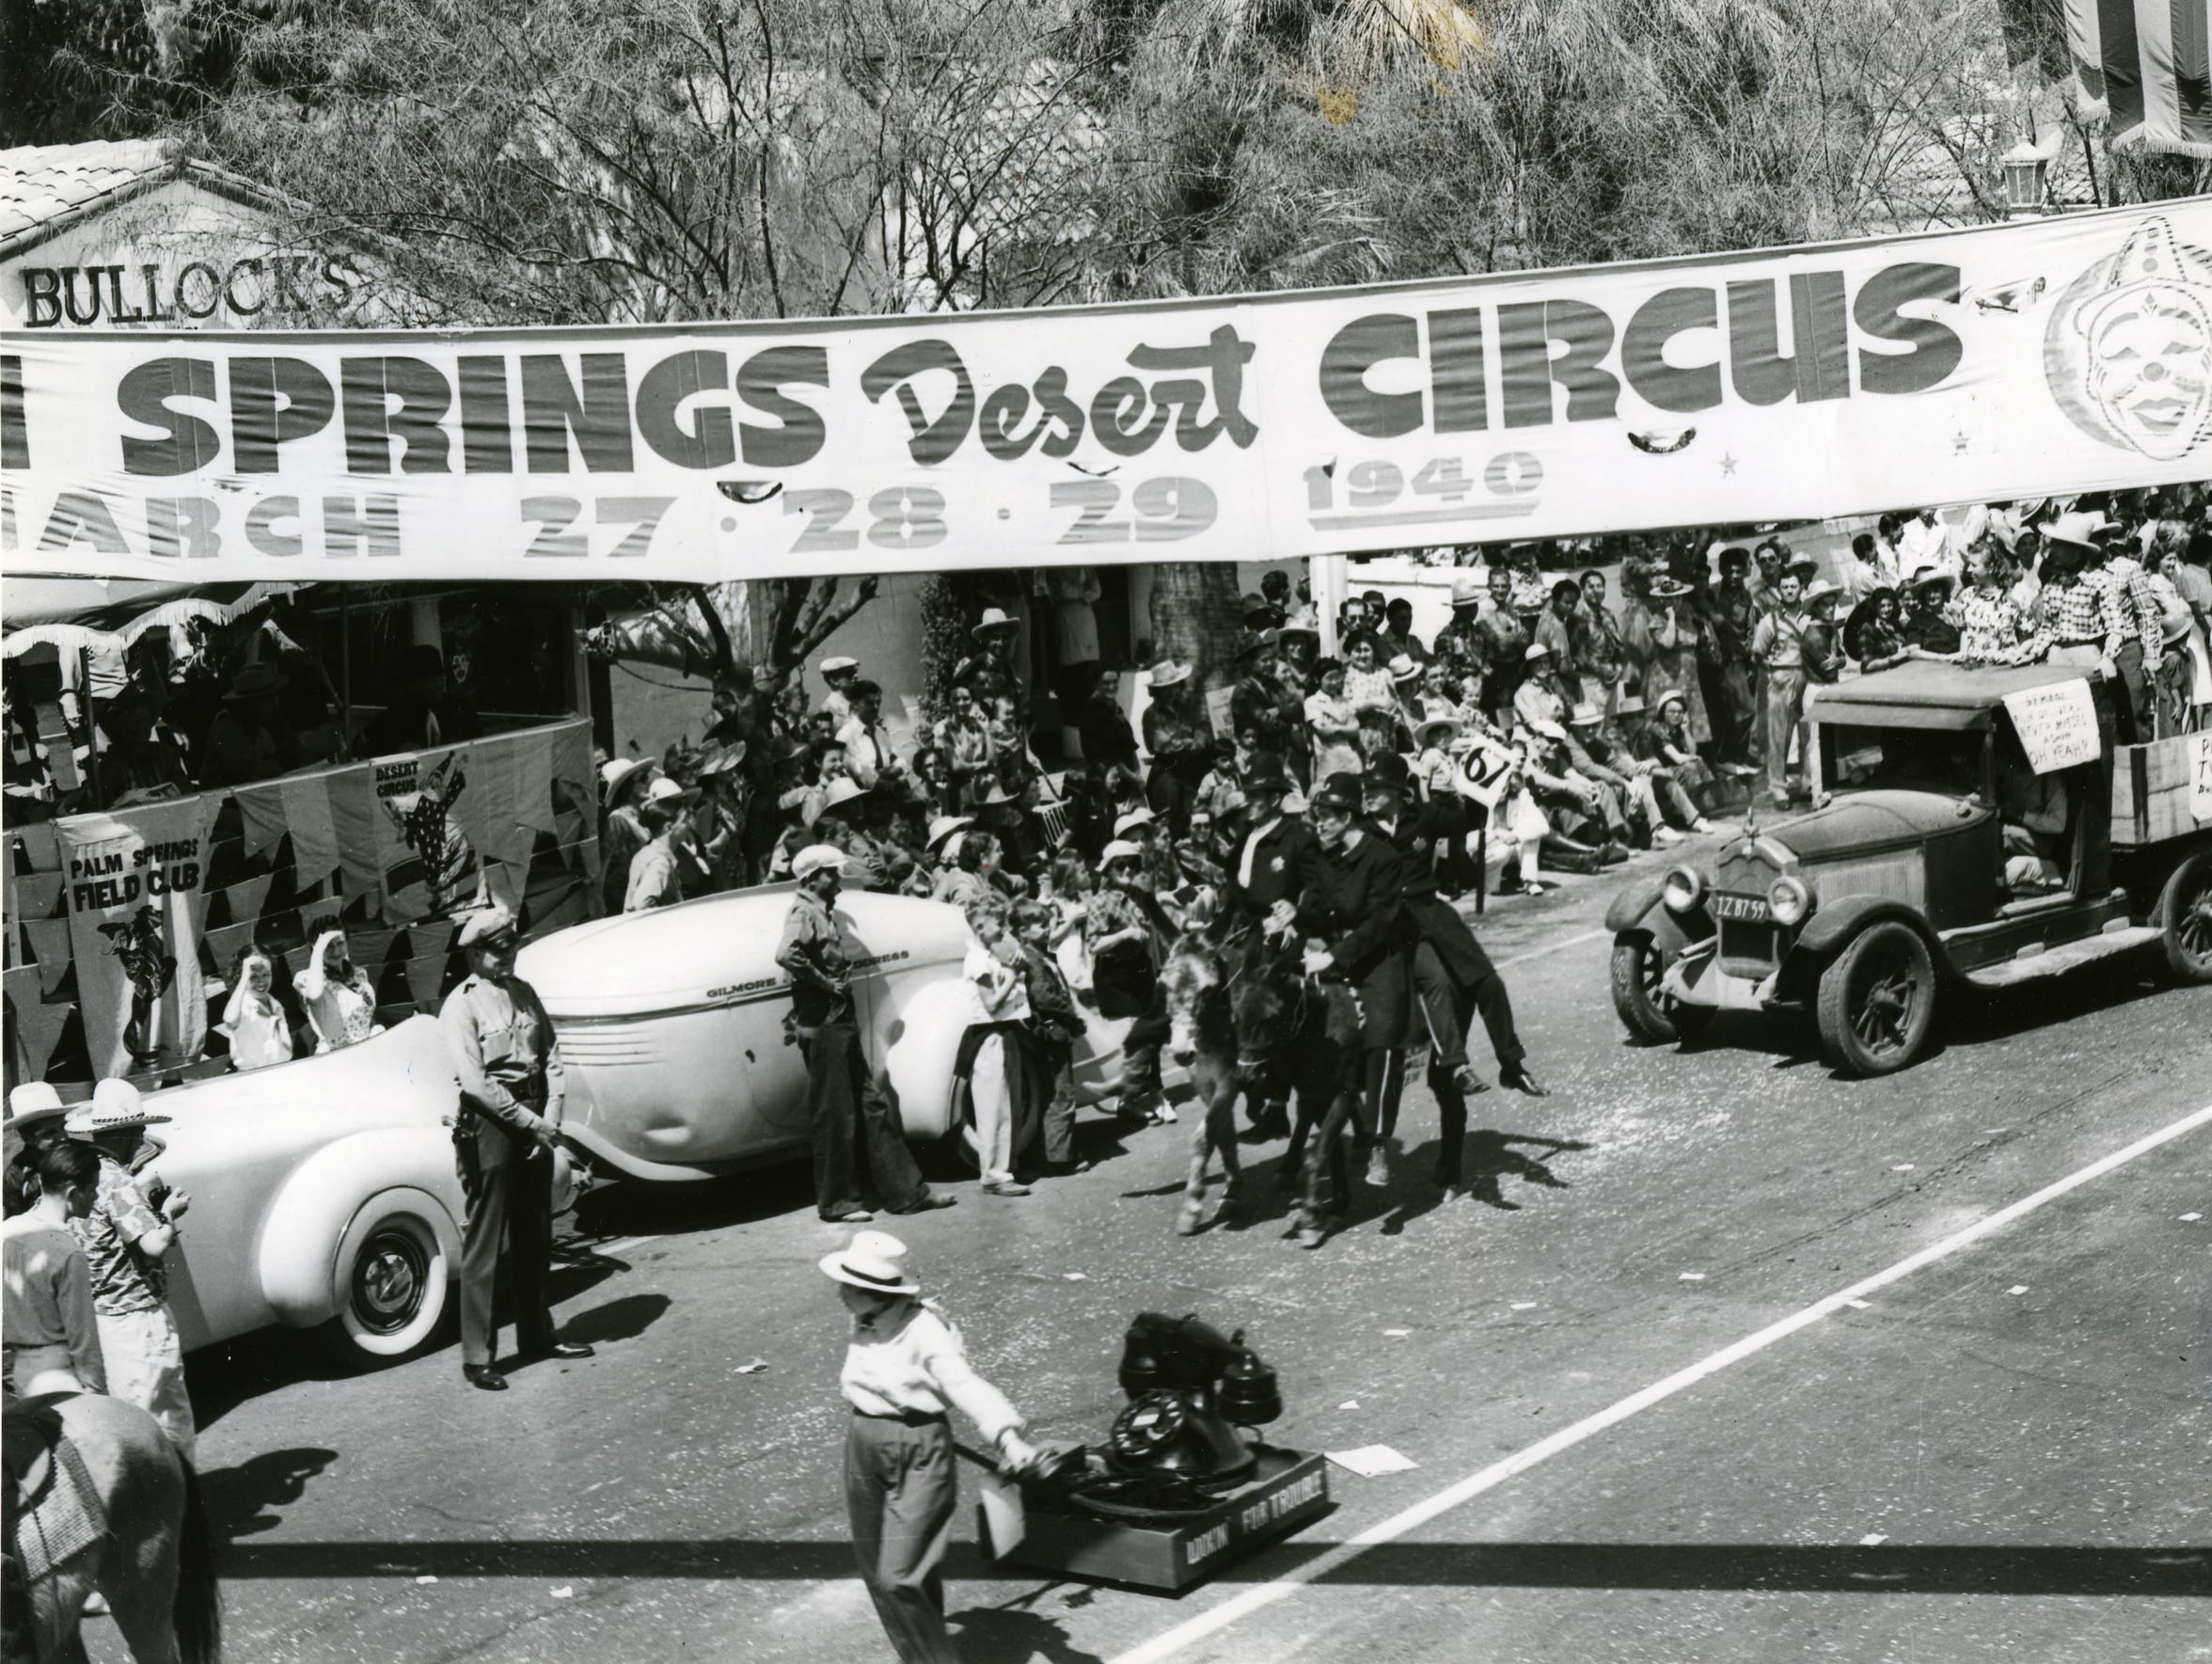 The Desert Circus Rodeo parade in March, 1940.